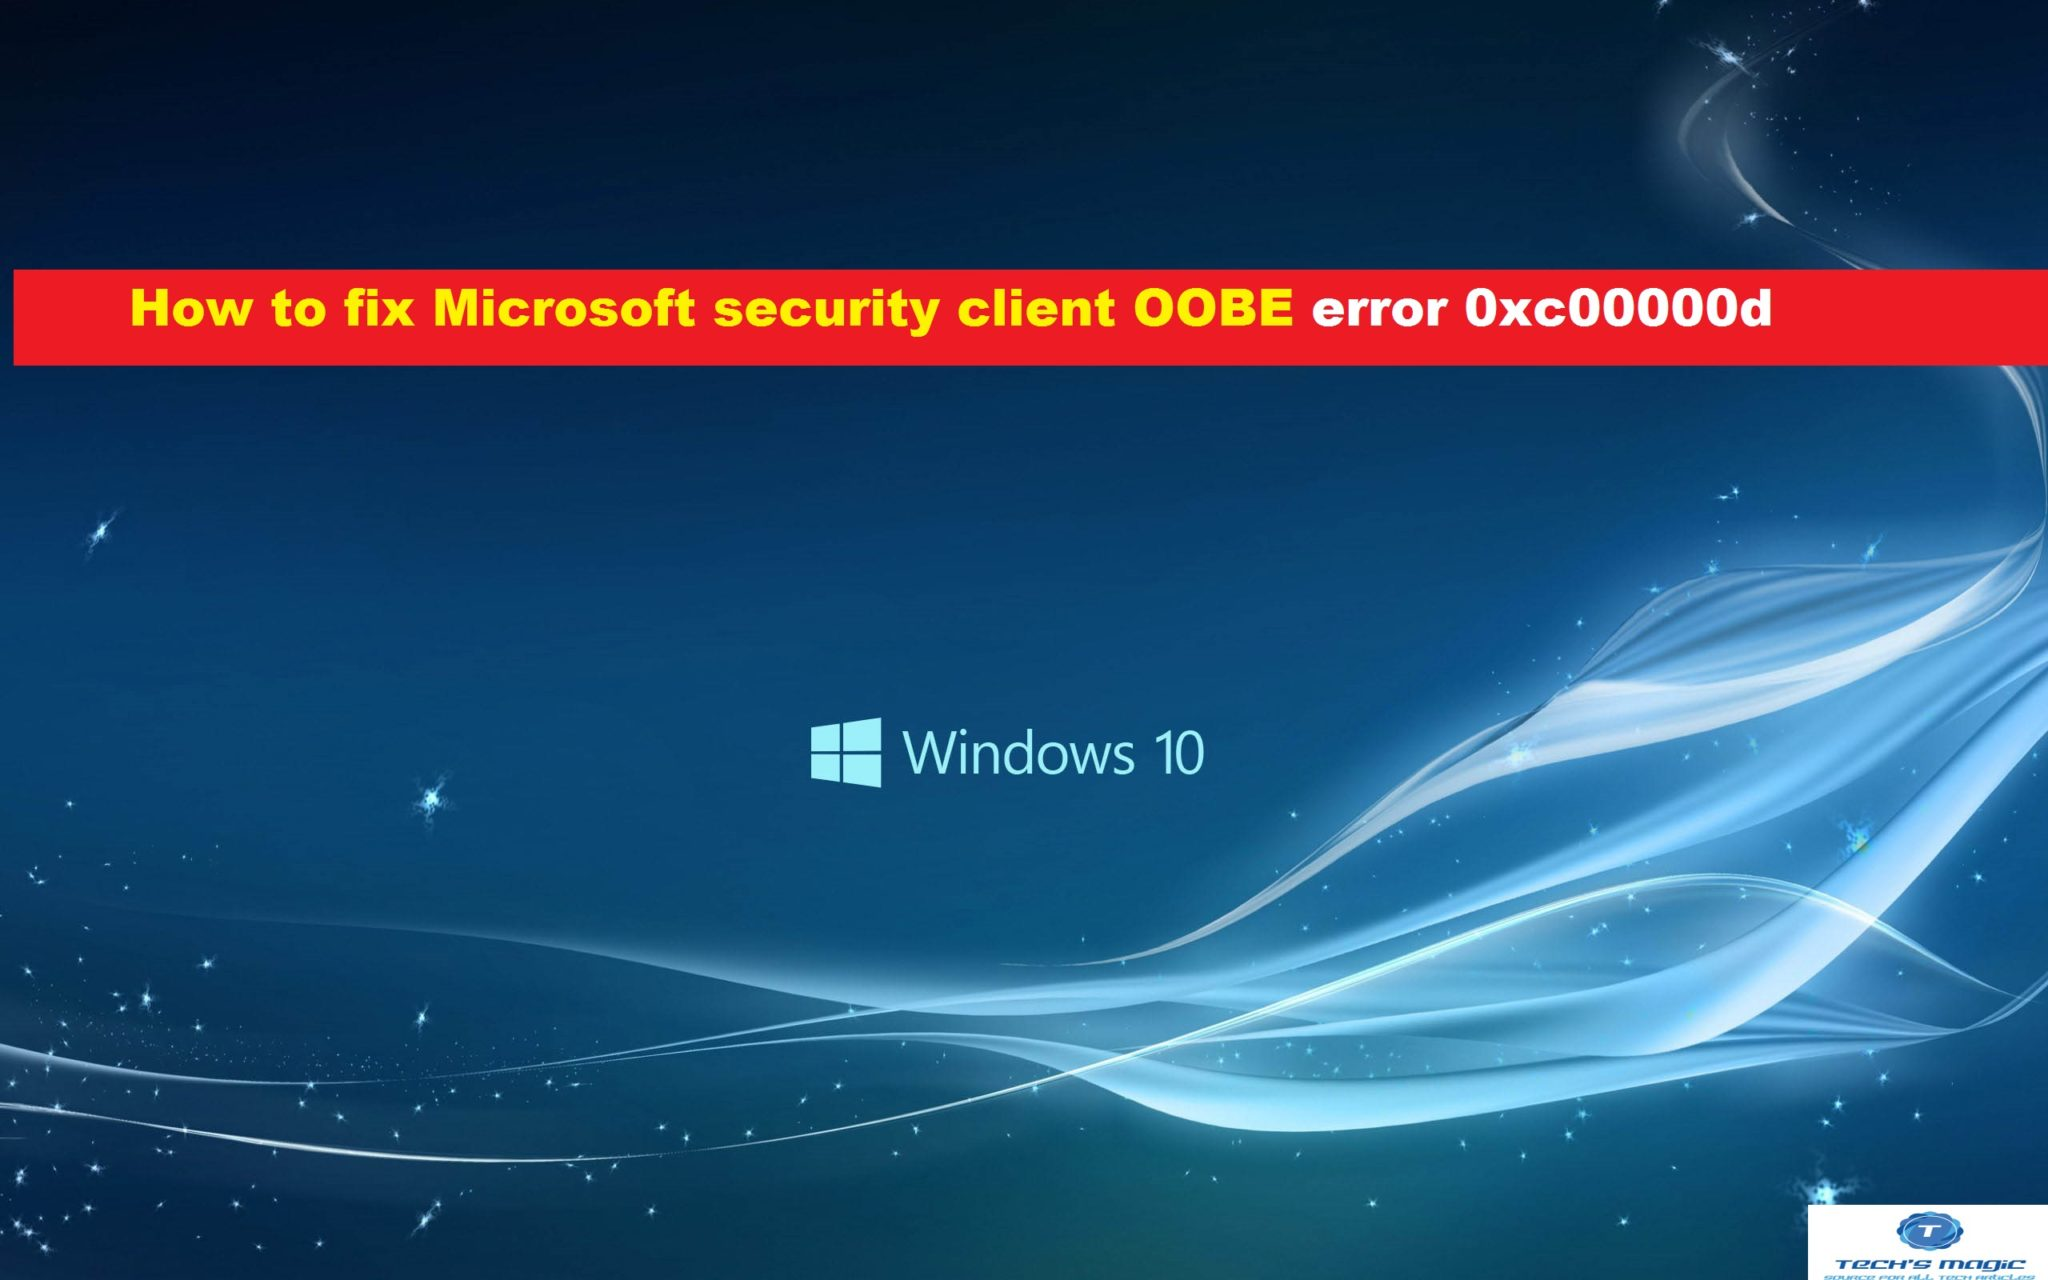 Microsoft security client OOBE windows 10